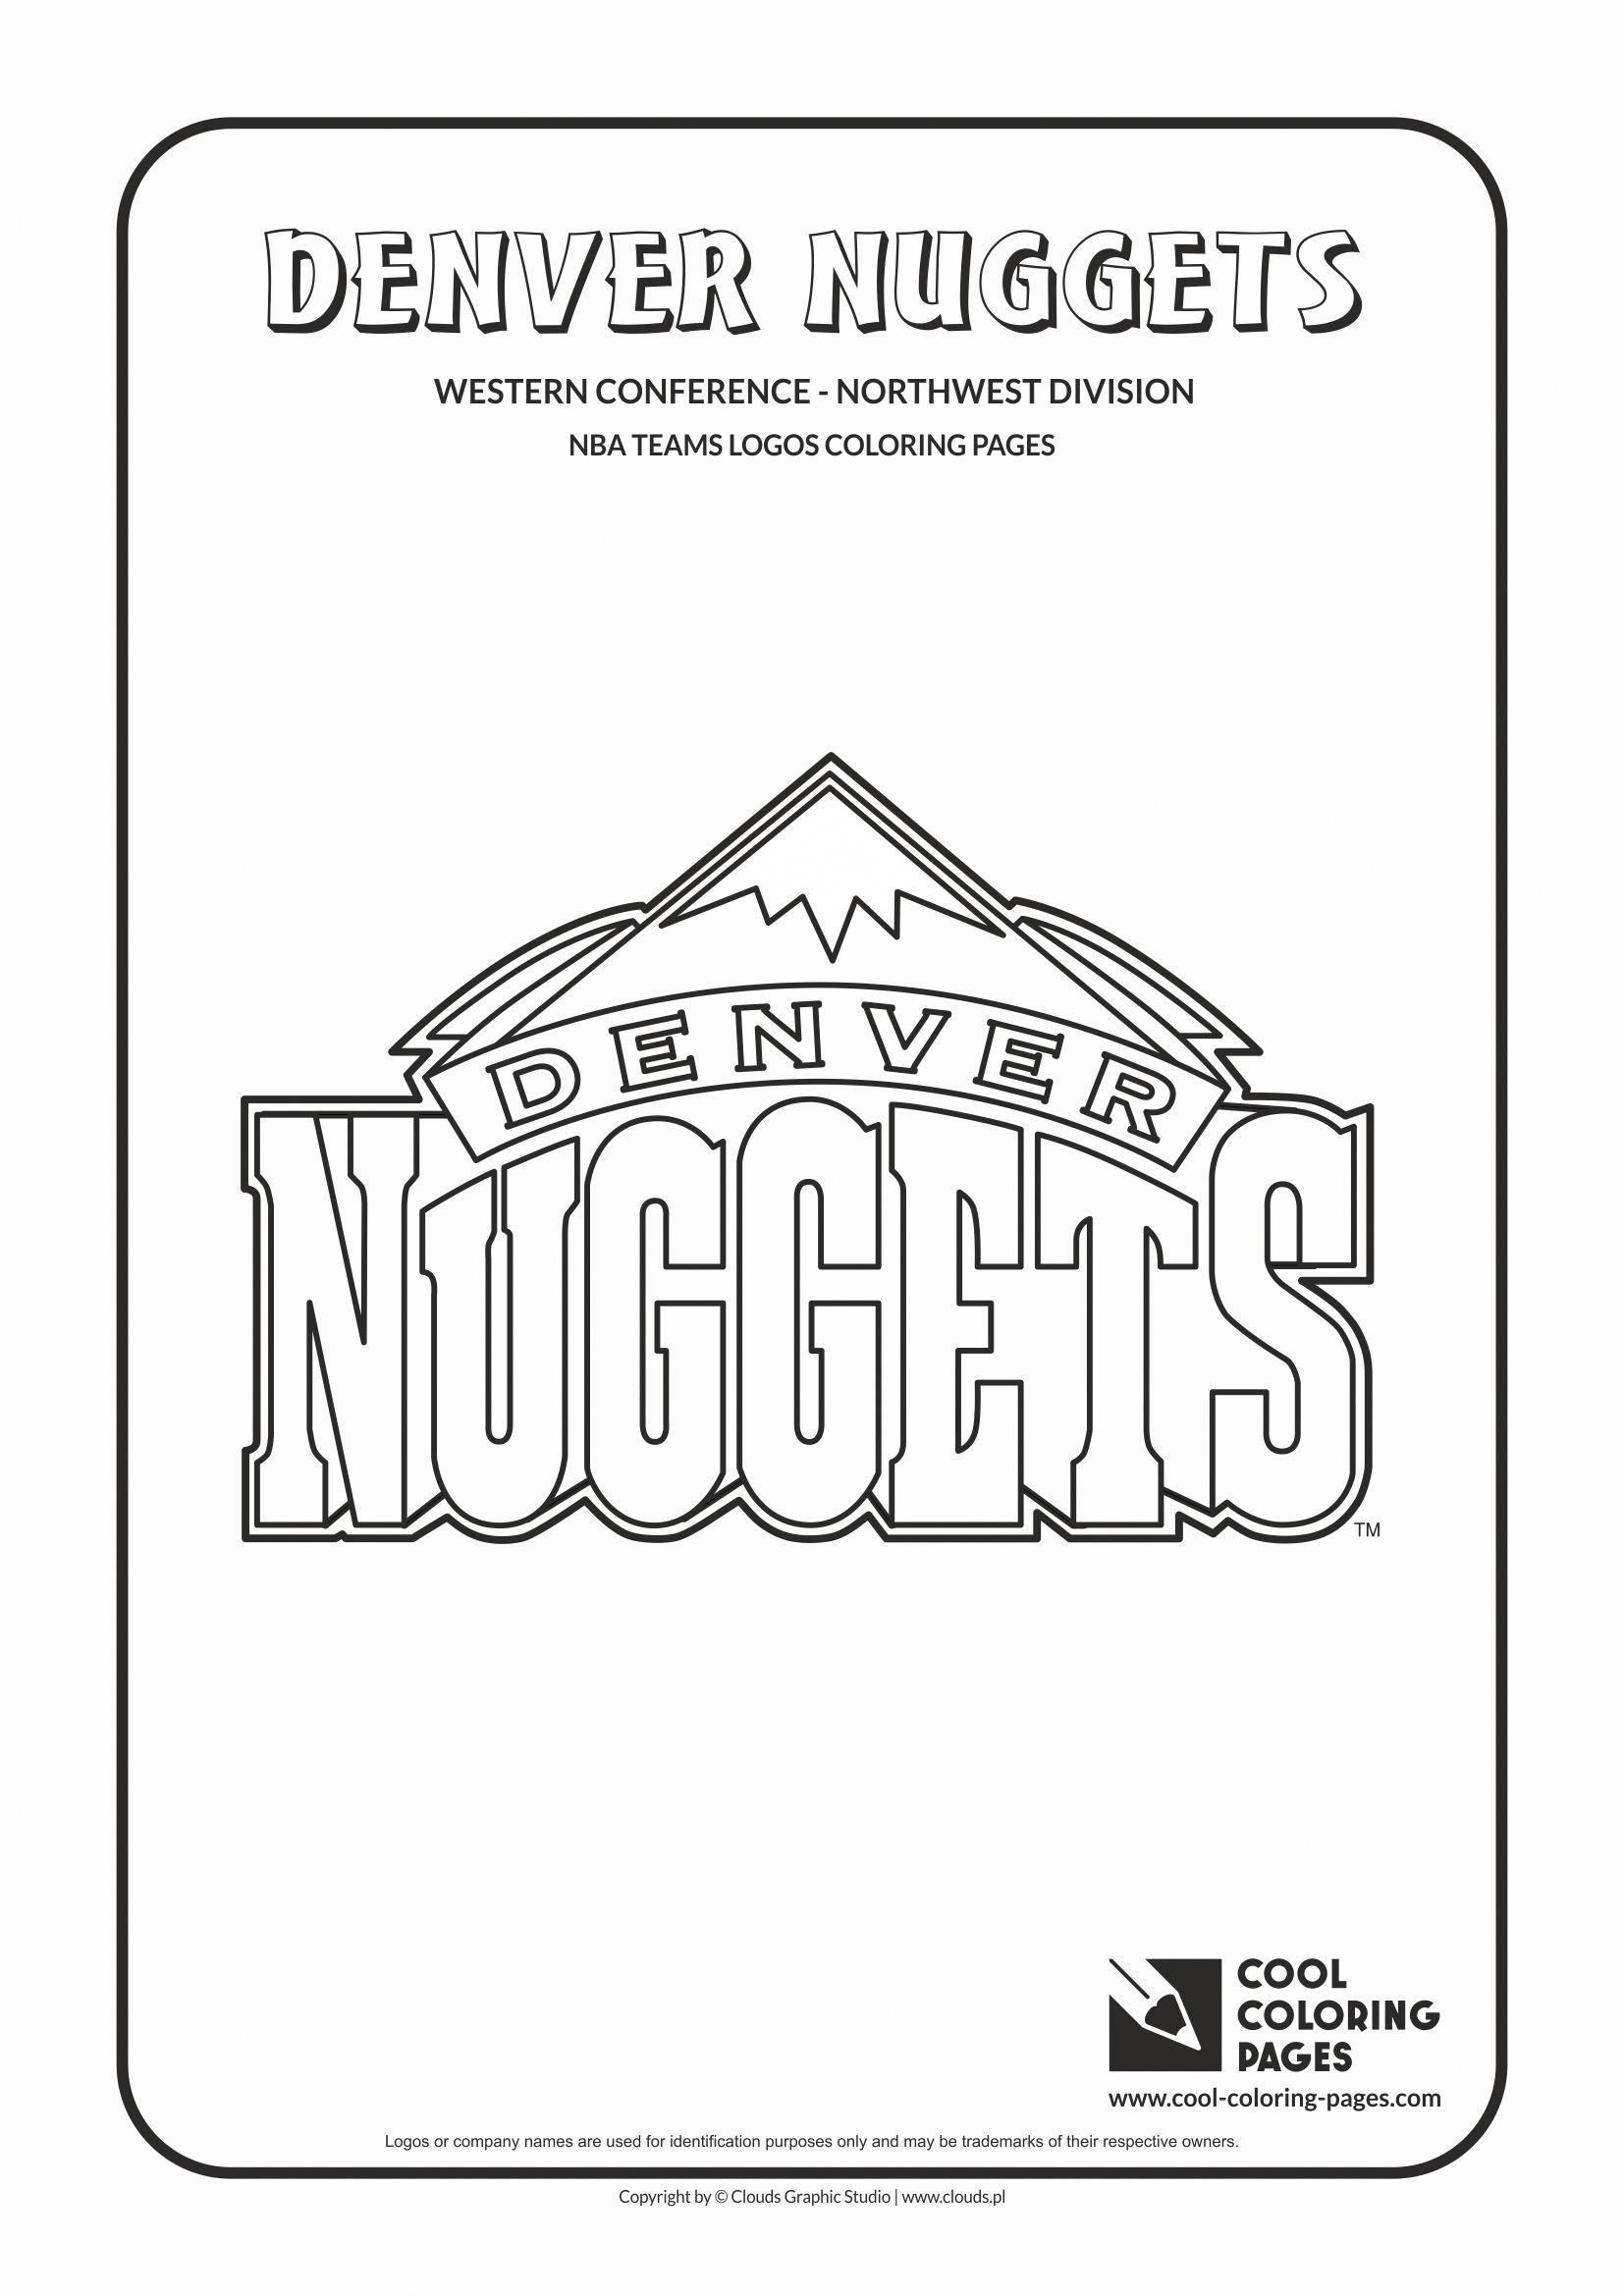 Denver Nuggets Nba Basketball Teams Logos Coloring Pages Cool